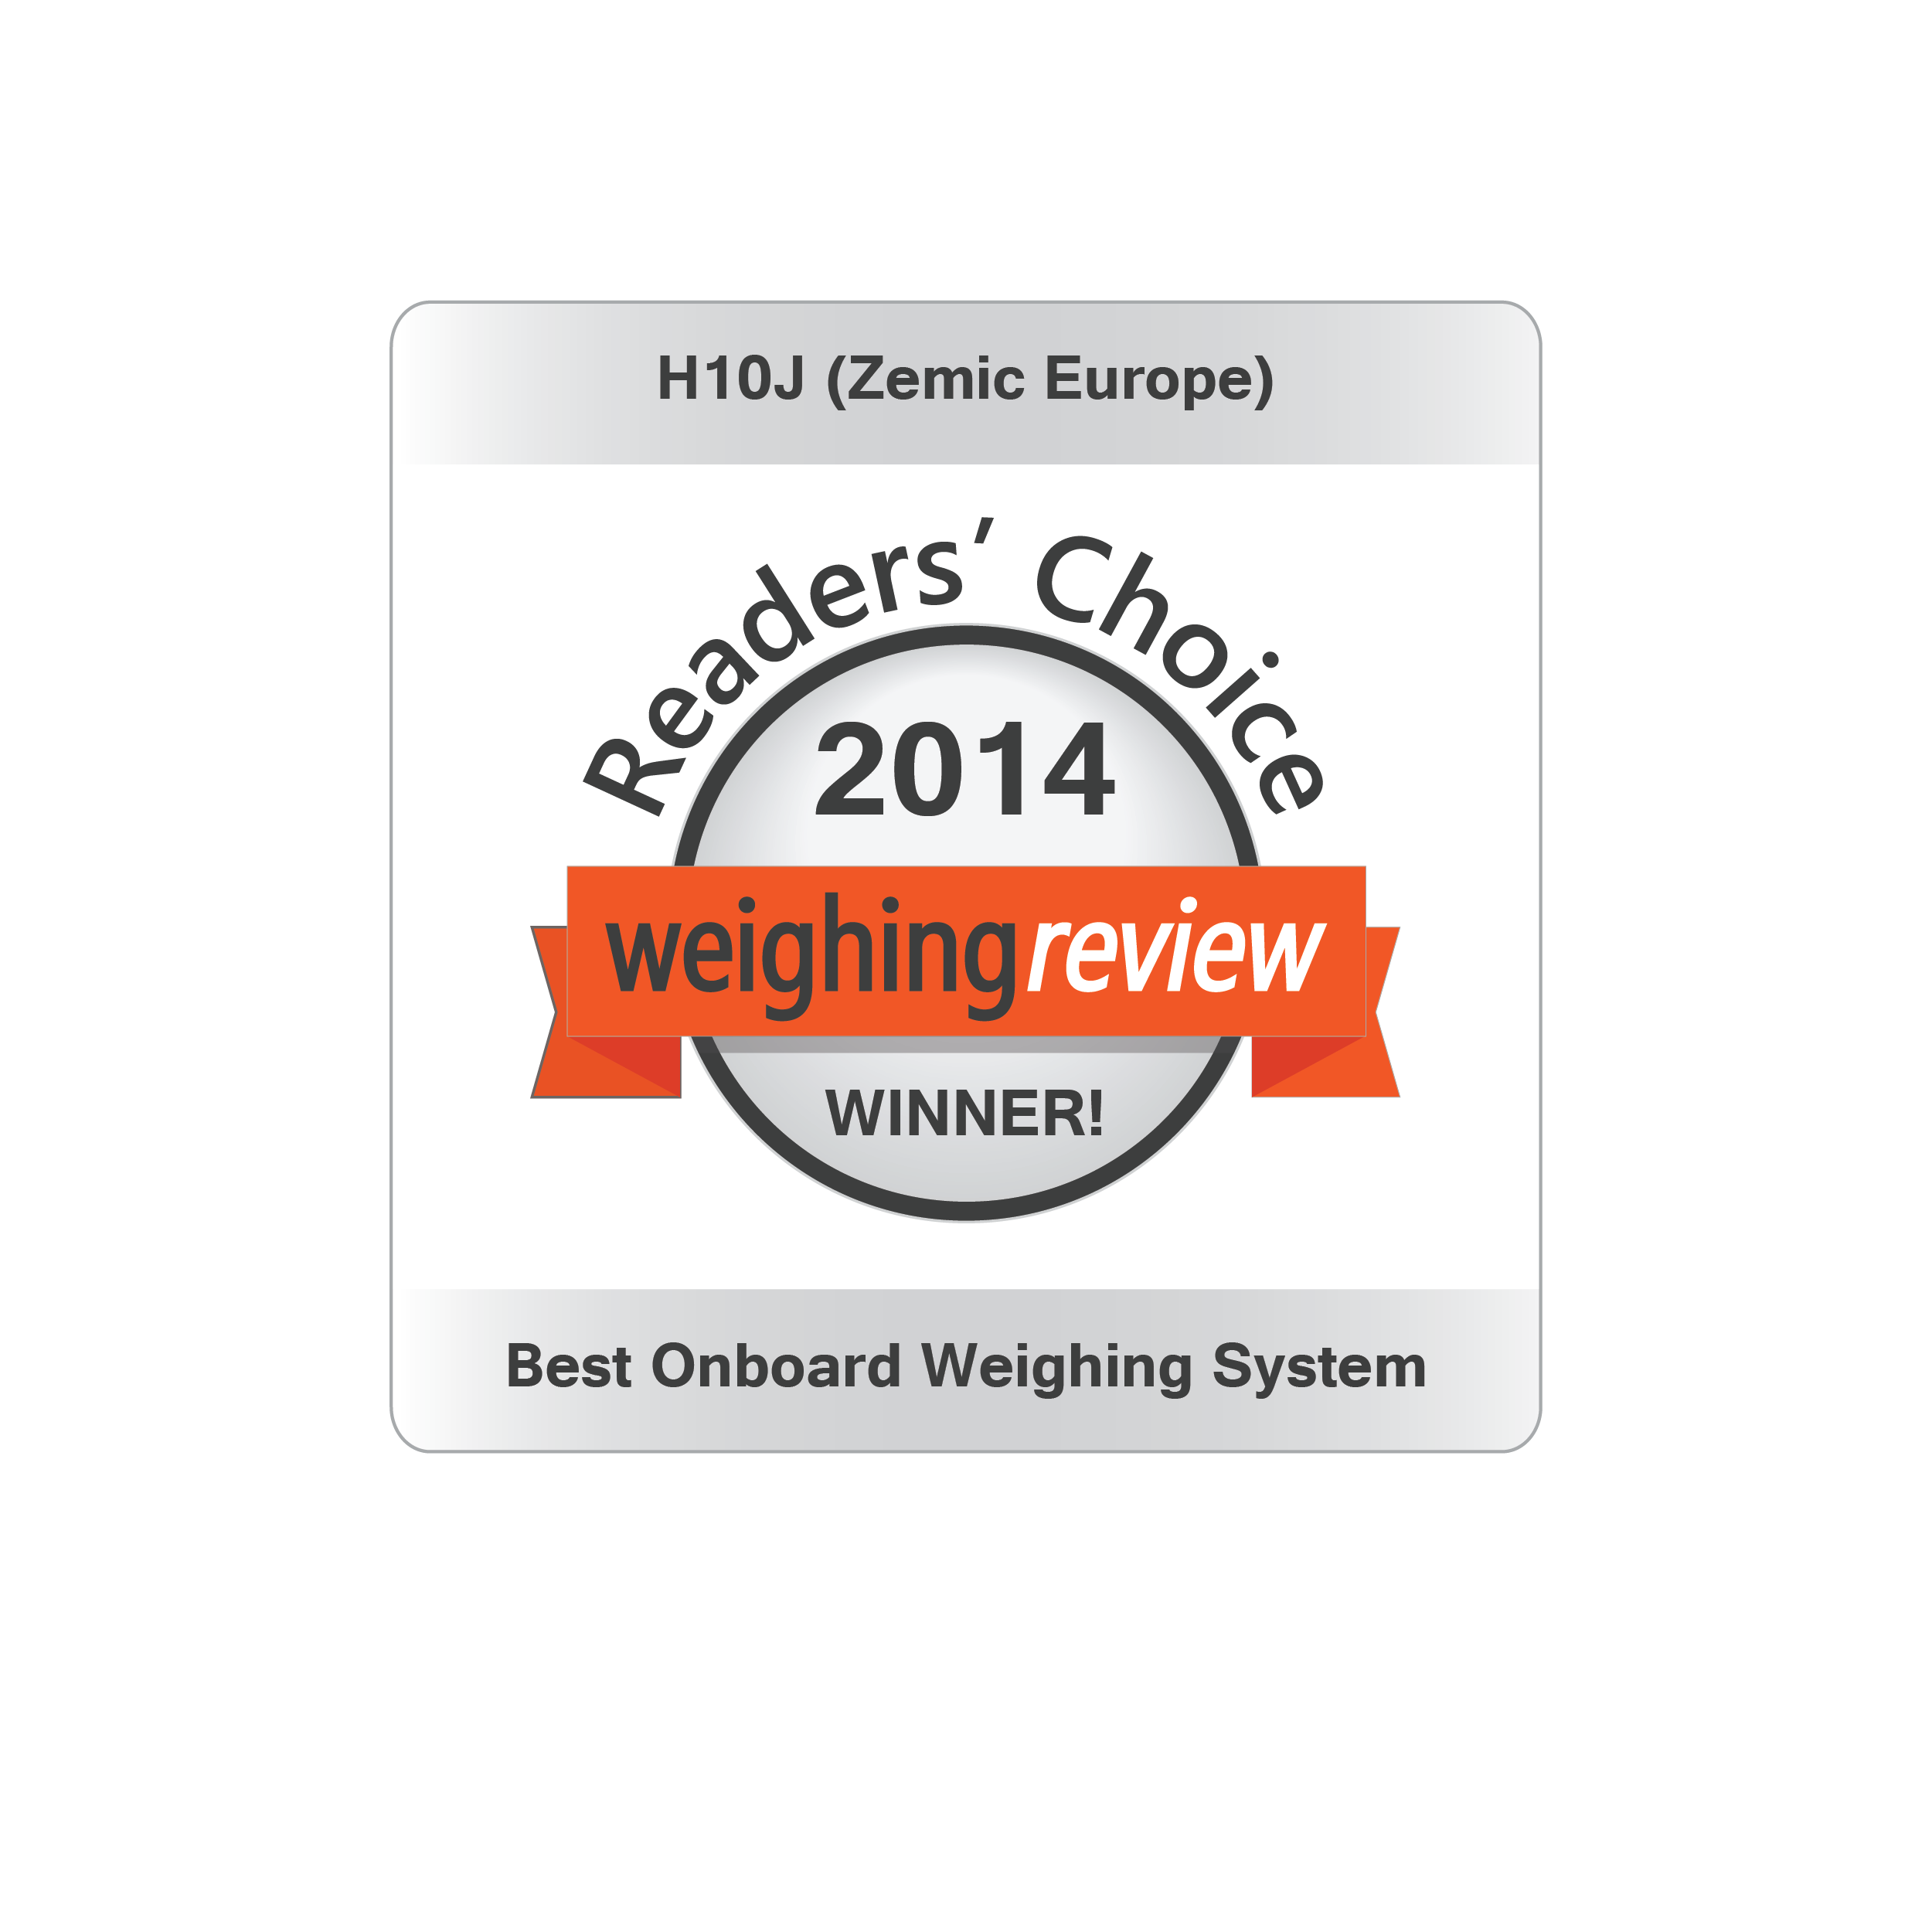 best onboard weighing solution 2014